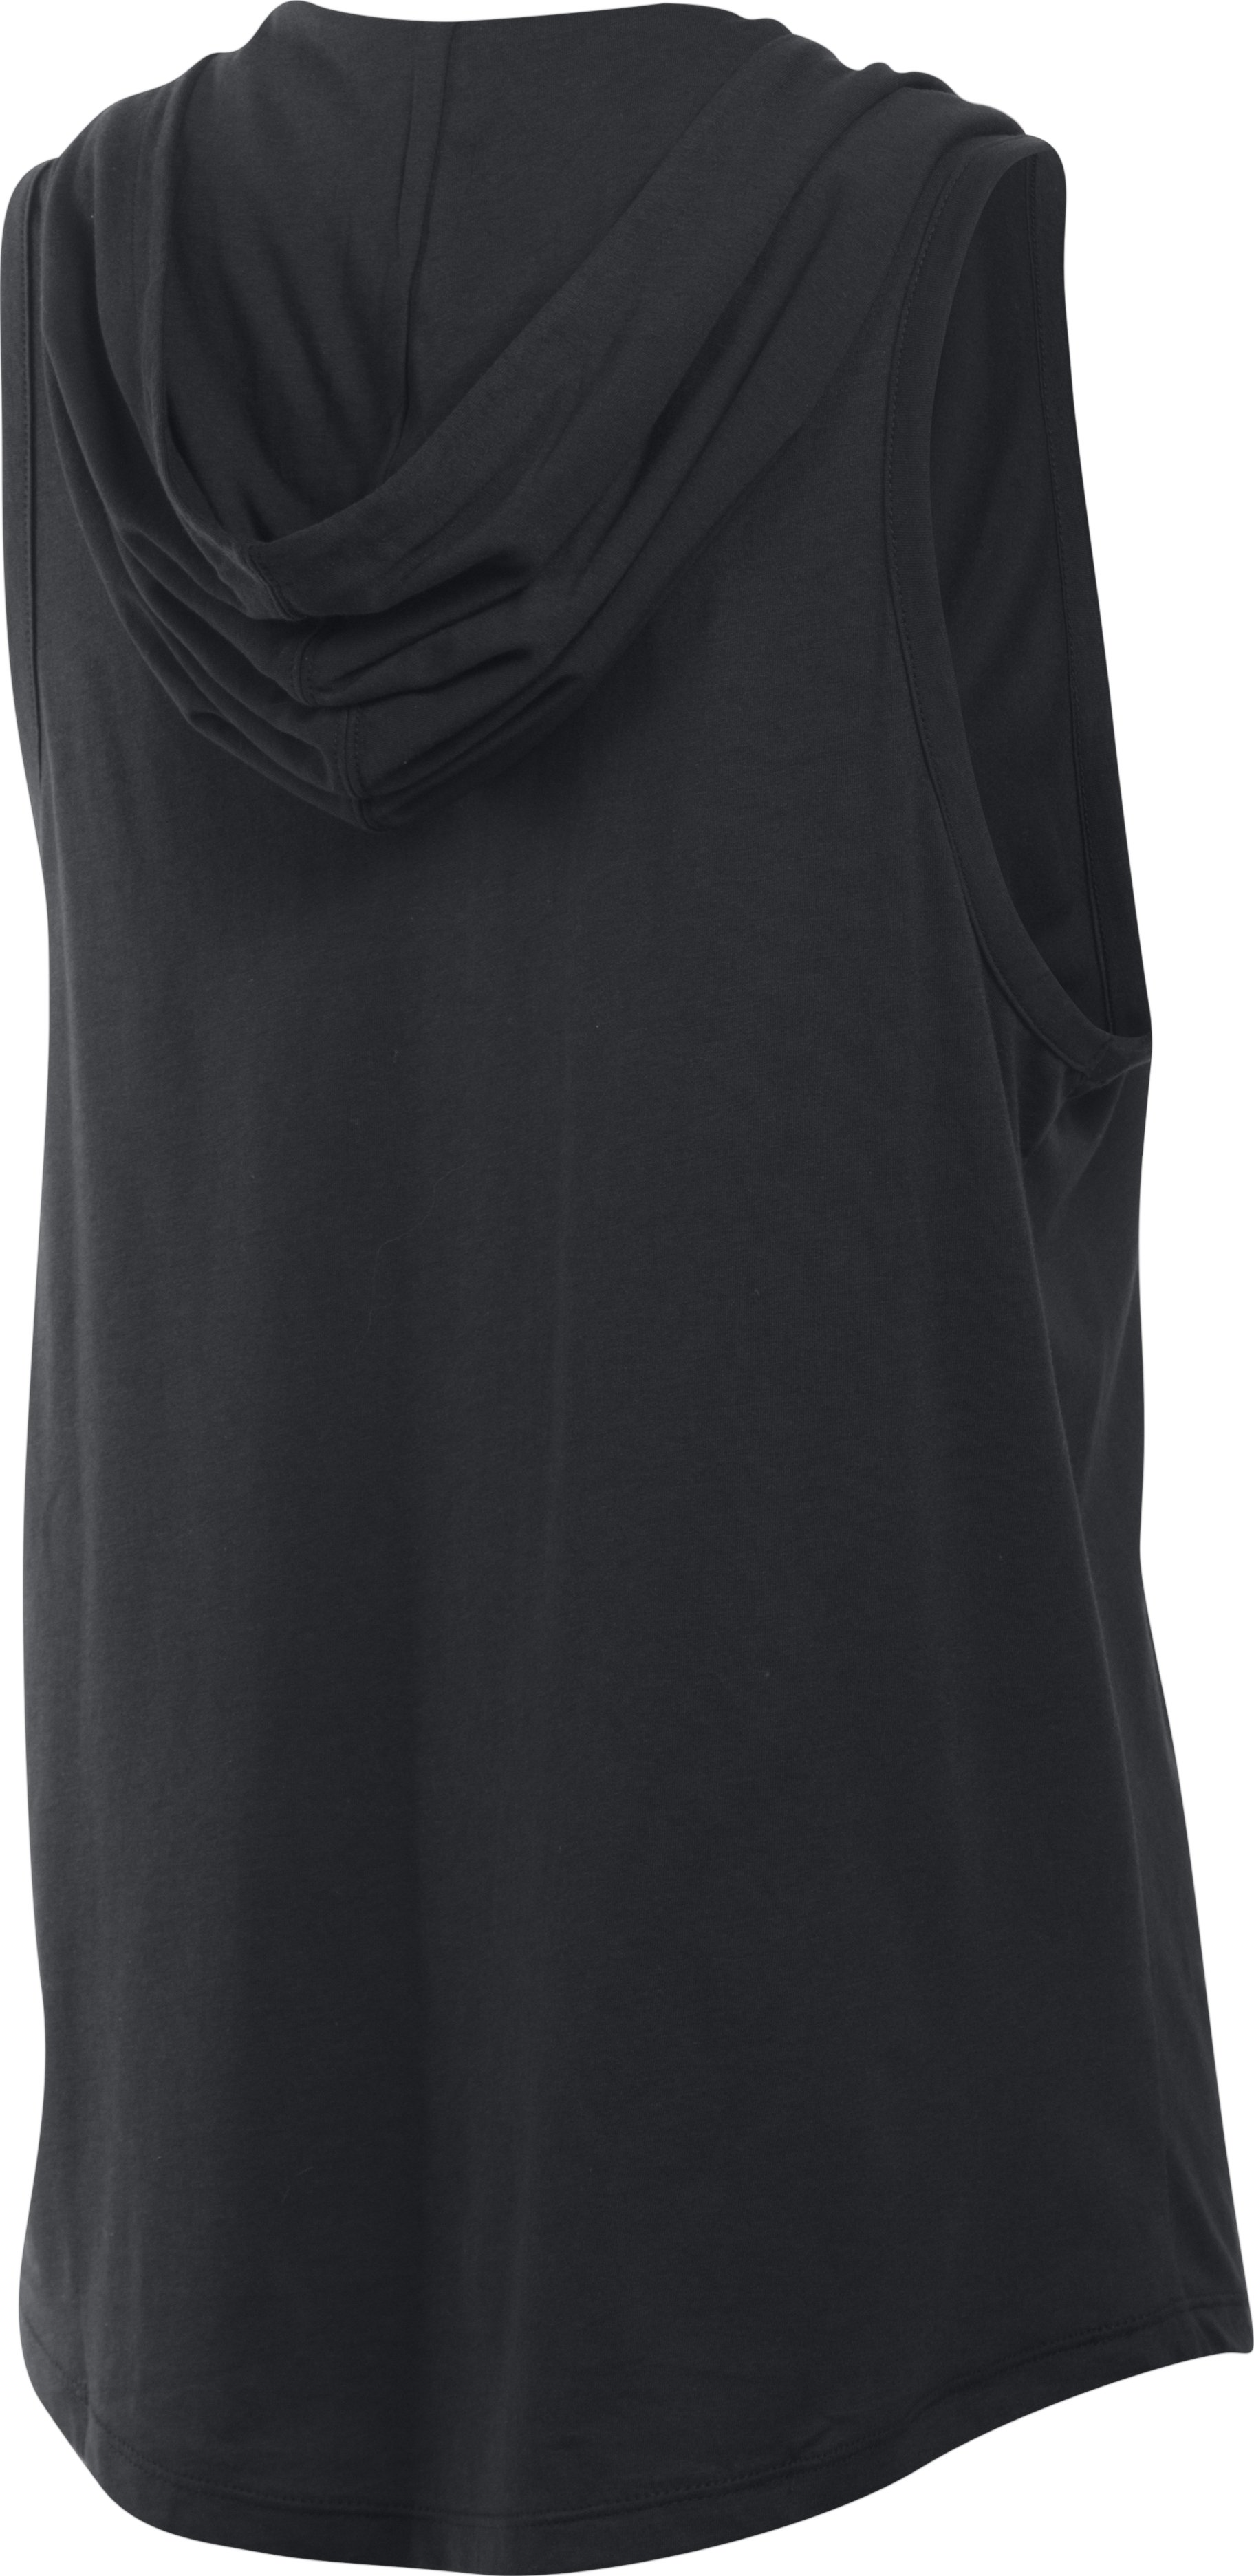 Women's UA Cotton Modal Sleeveless Hoodie, Black